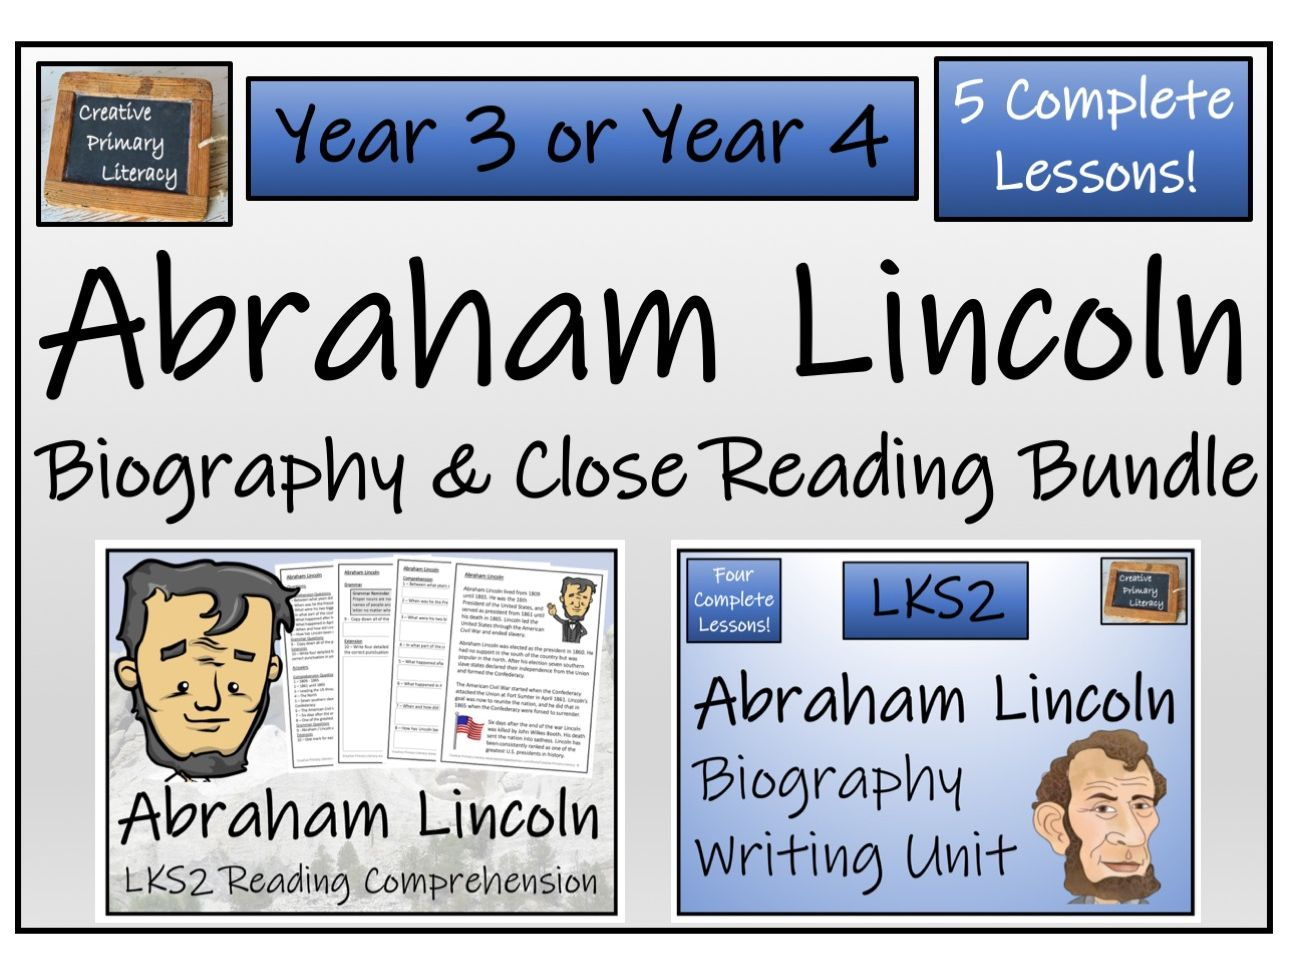 LKS2 History - Abraham Lincoln Reading Comprehension & Biography Bundle